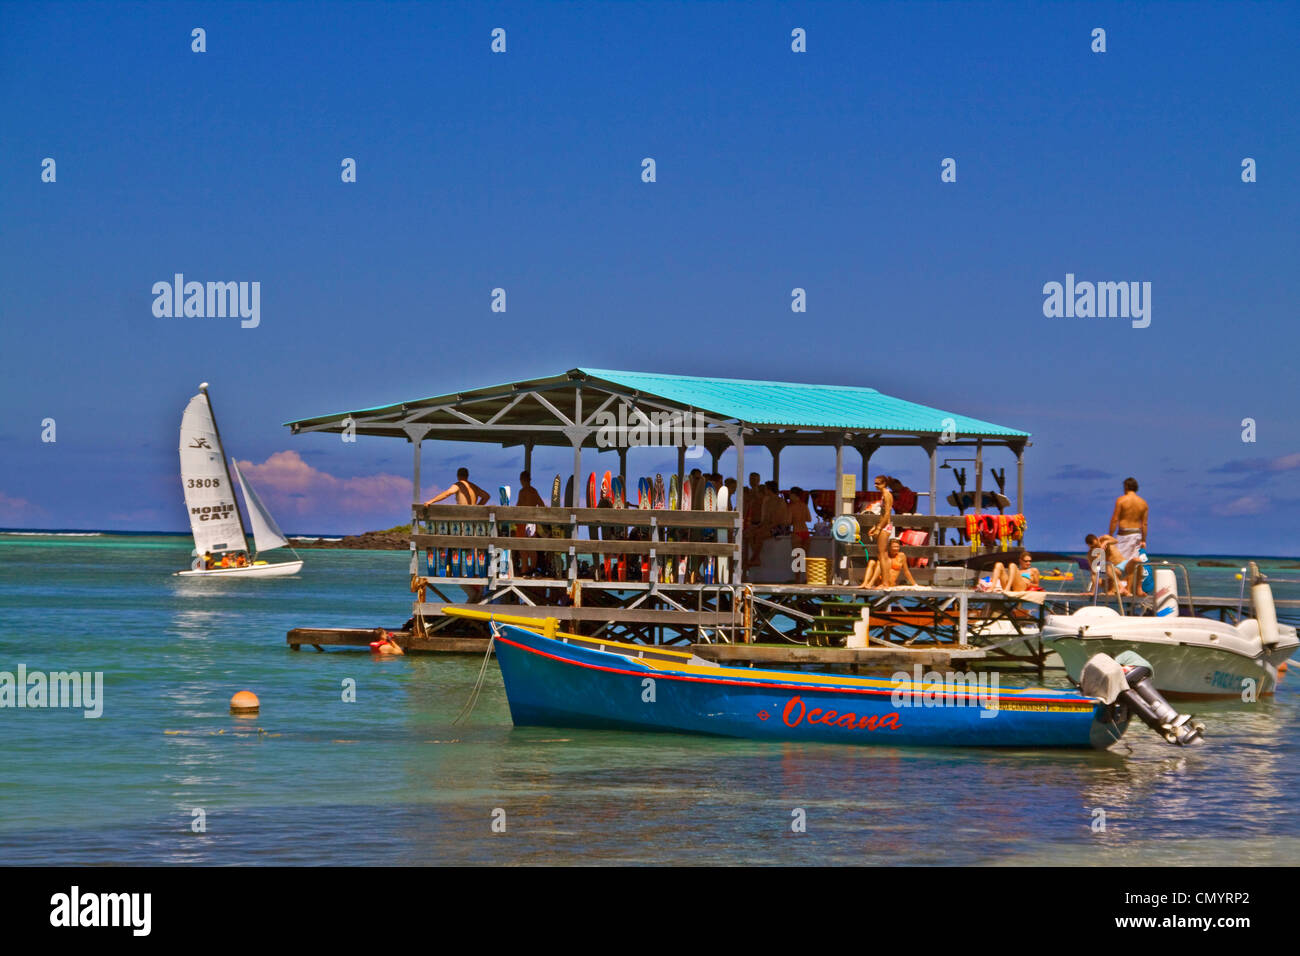 Water ski Pier of Club Med at La Pointe aux Canonniers at north east coast Mauritius, Africa - Stock Image